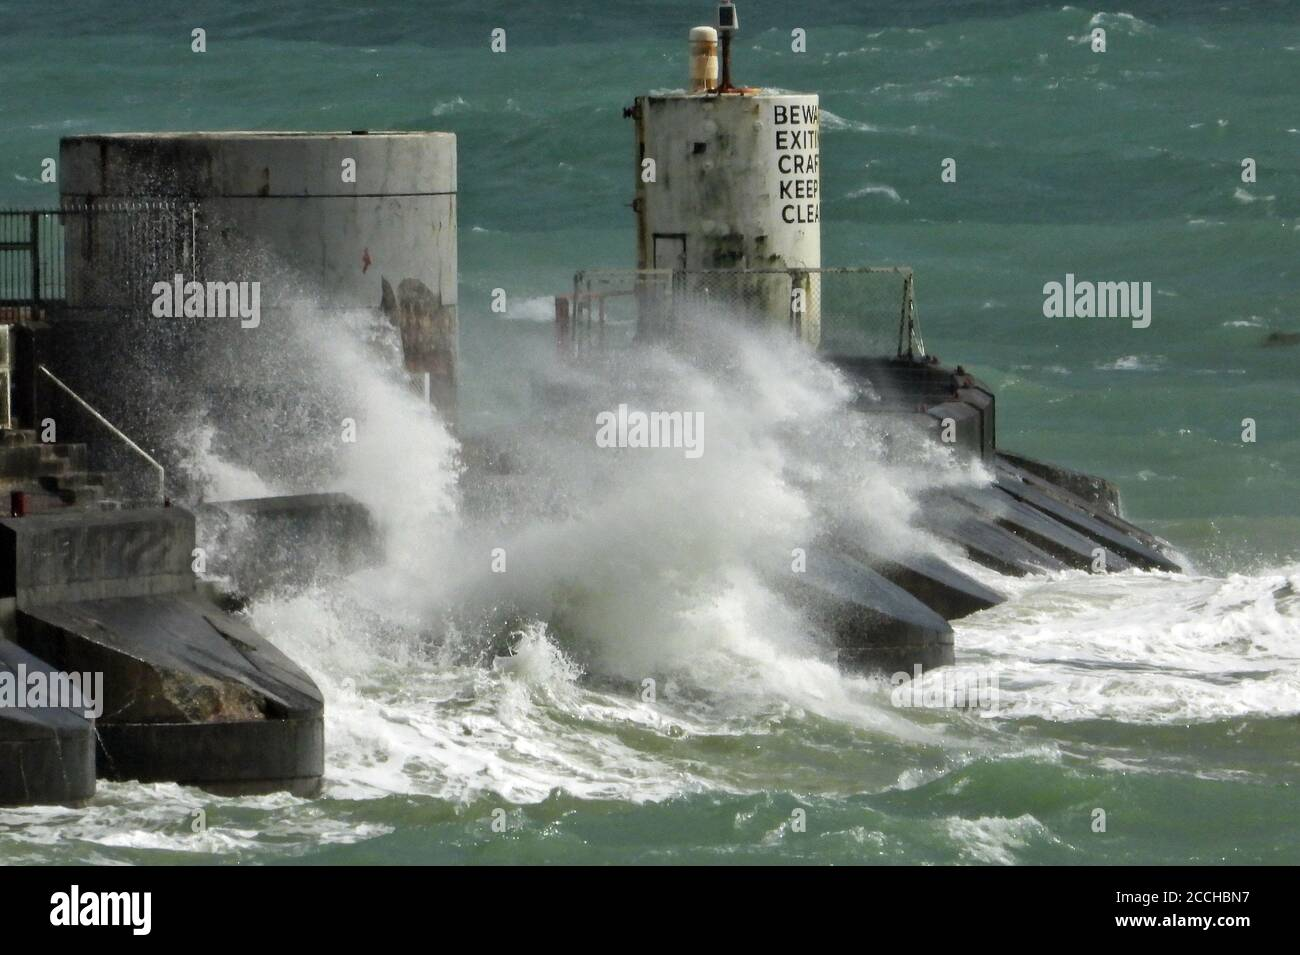 Brighton's Marina Sussex 22nd August 2020 Big  waves crashing against the Marina's walls during winds gusting at 50 MPH. Credit: Leo Mason sports/Alamy Live News Stock Photo